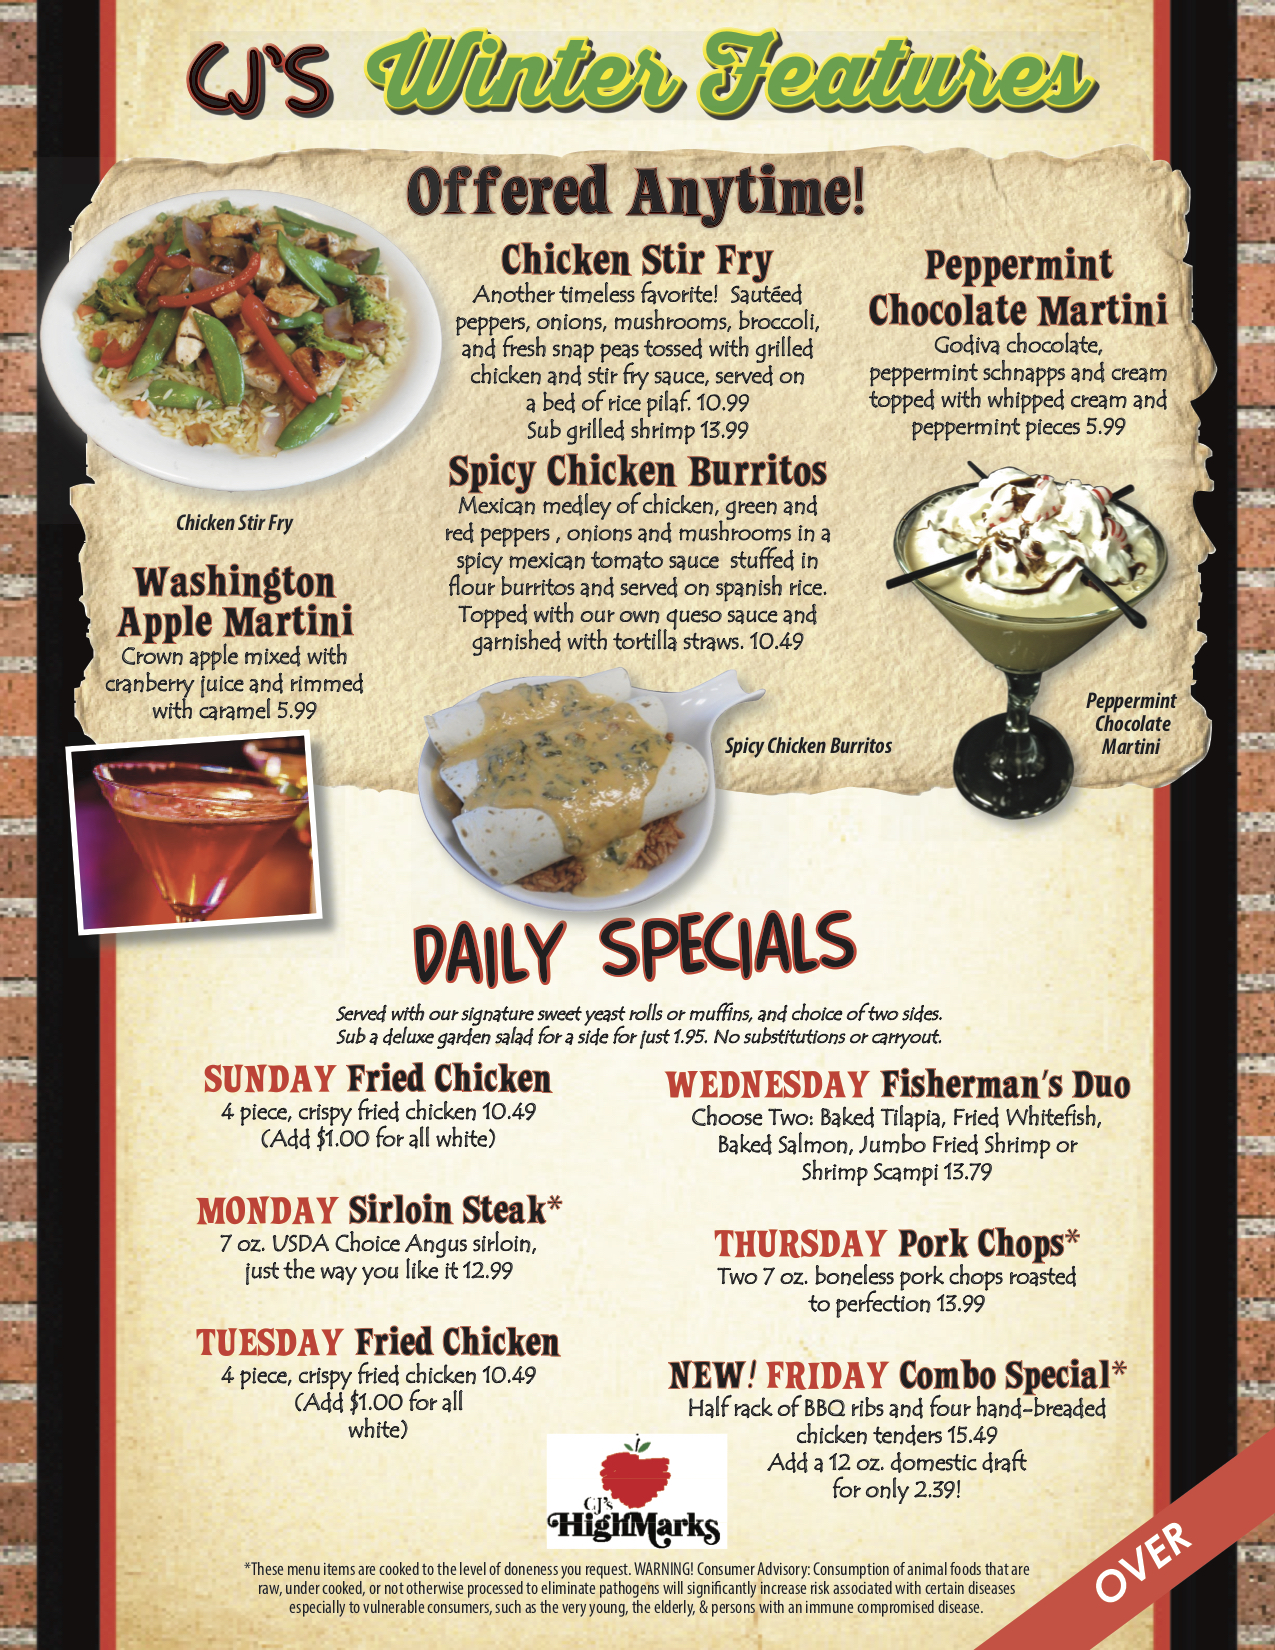 Cj's Winter Features & Daily Specials